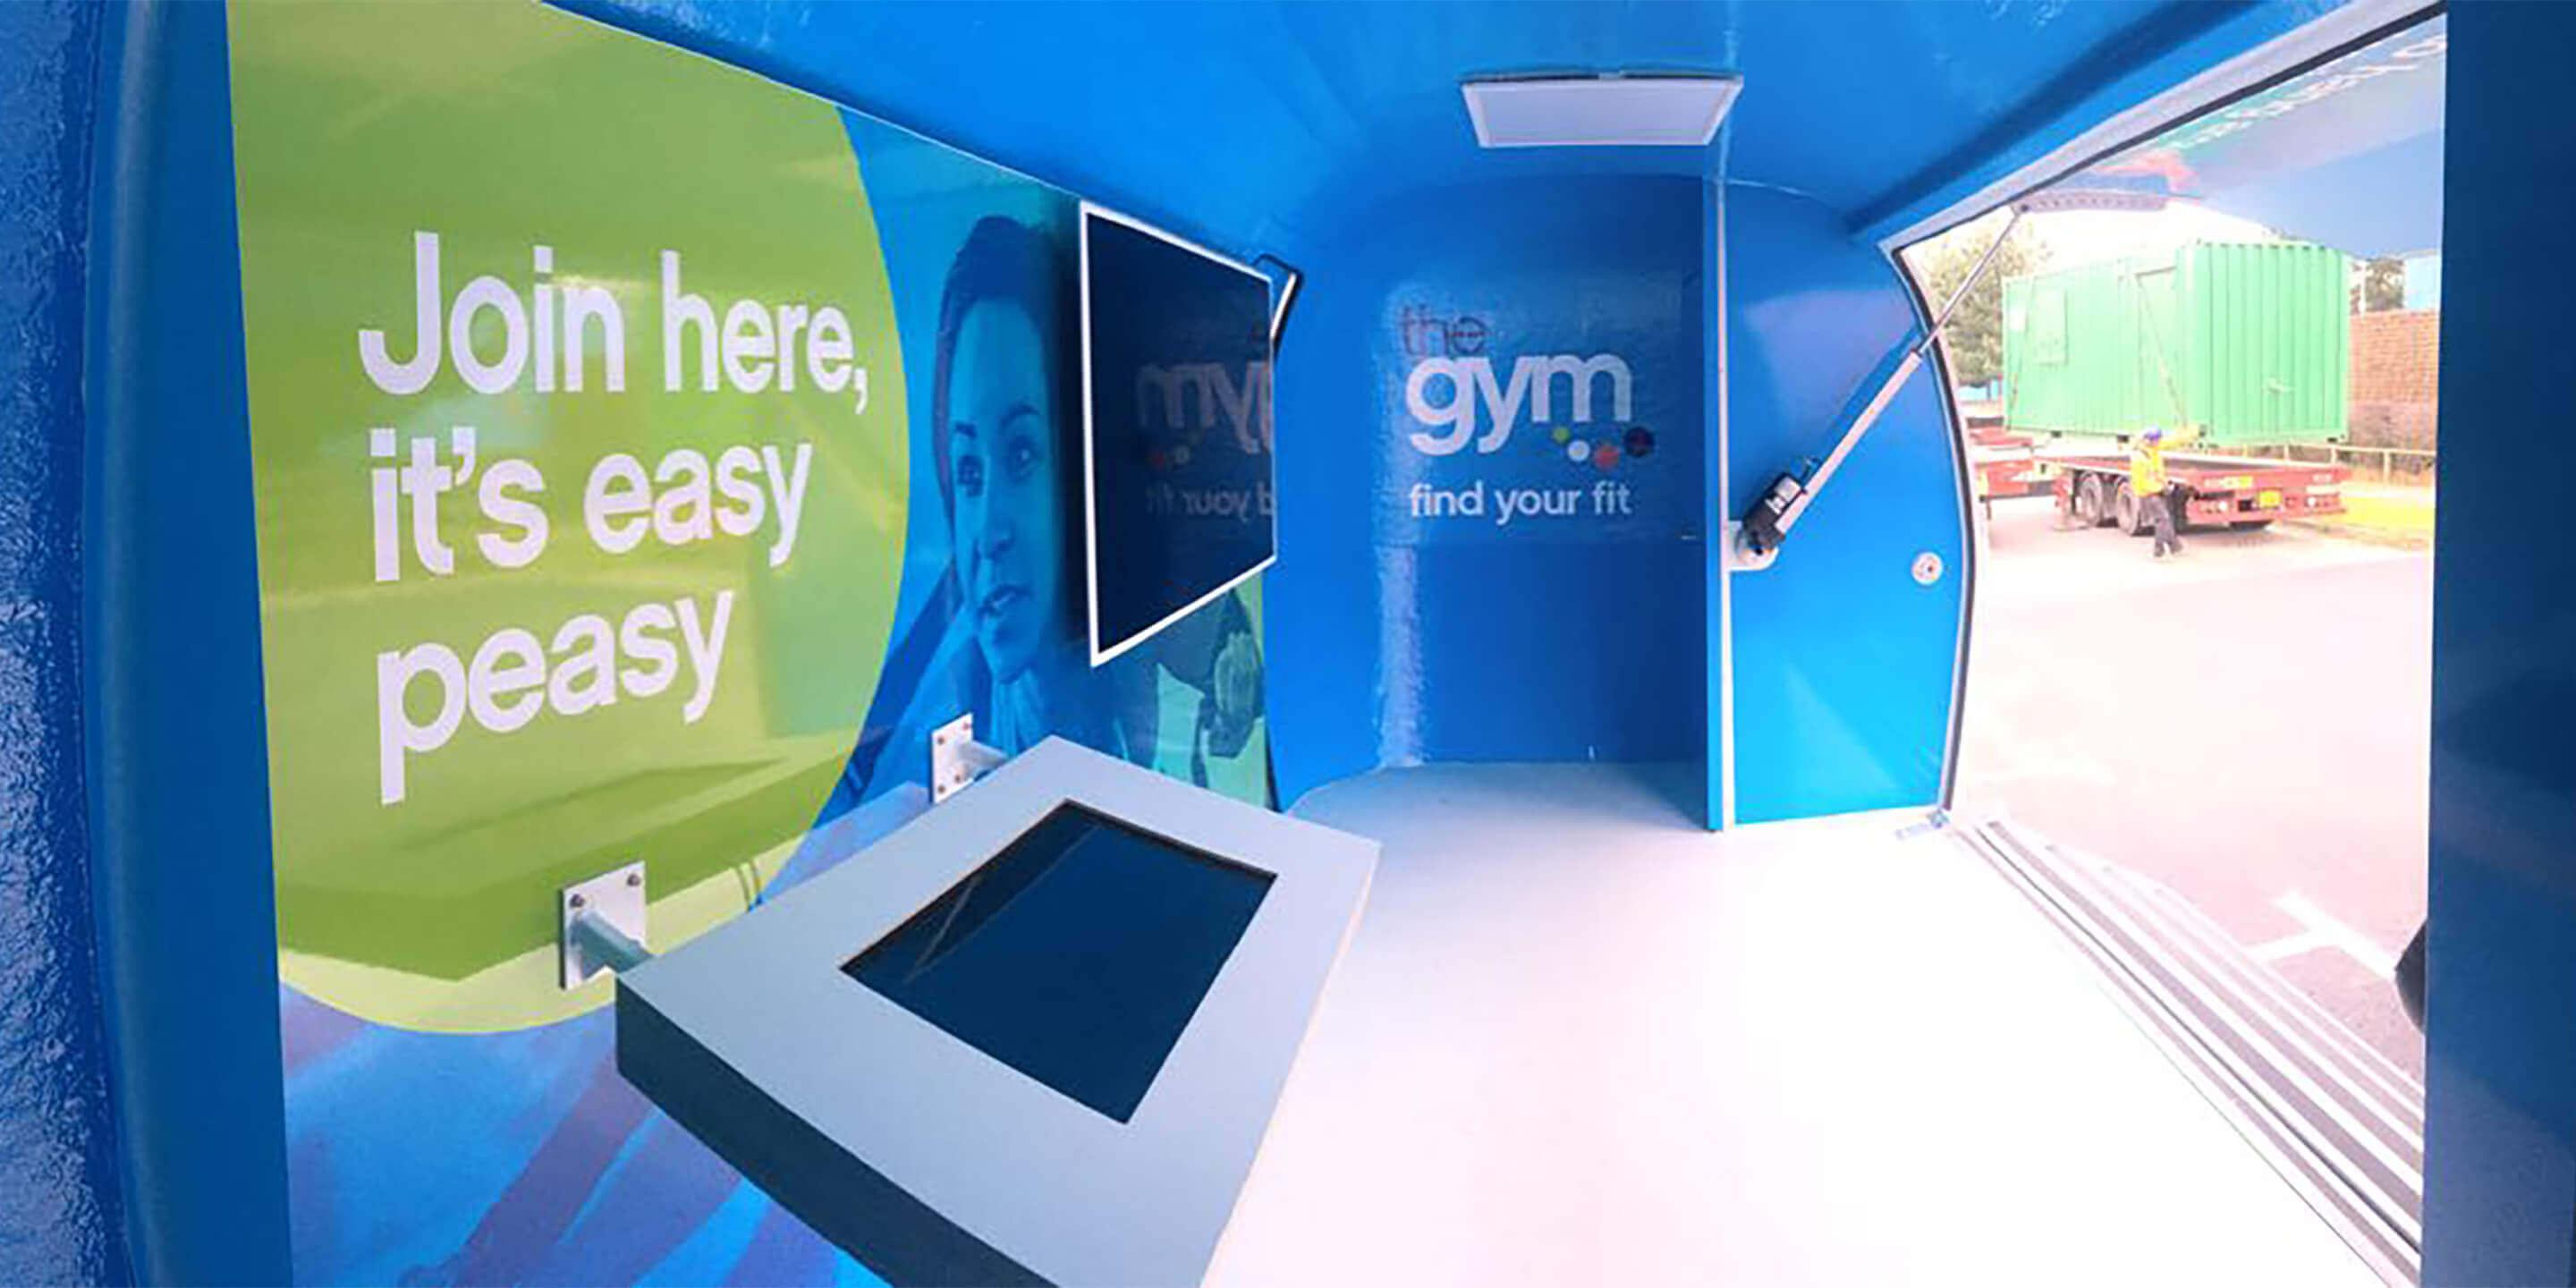 Exhibition Trailers: Explorer Promotional Vehicle for The Gym Group Awareness Tour Interior